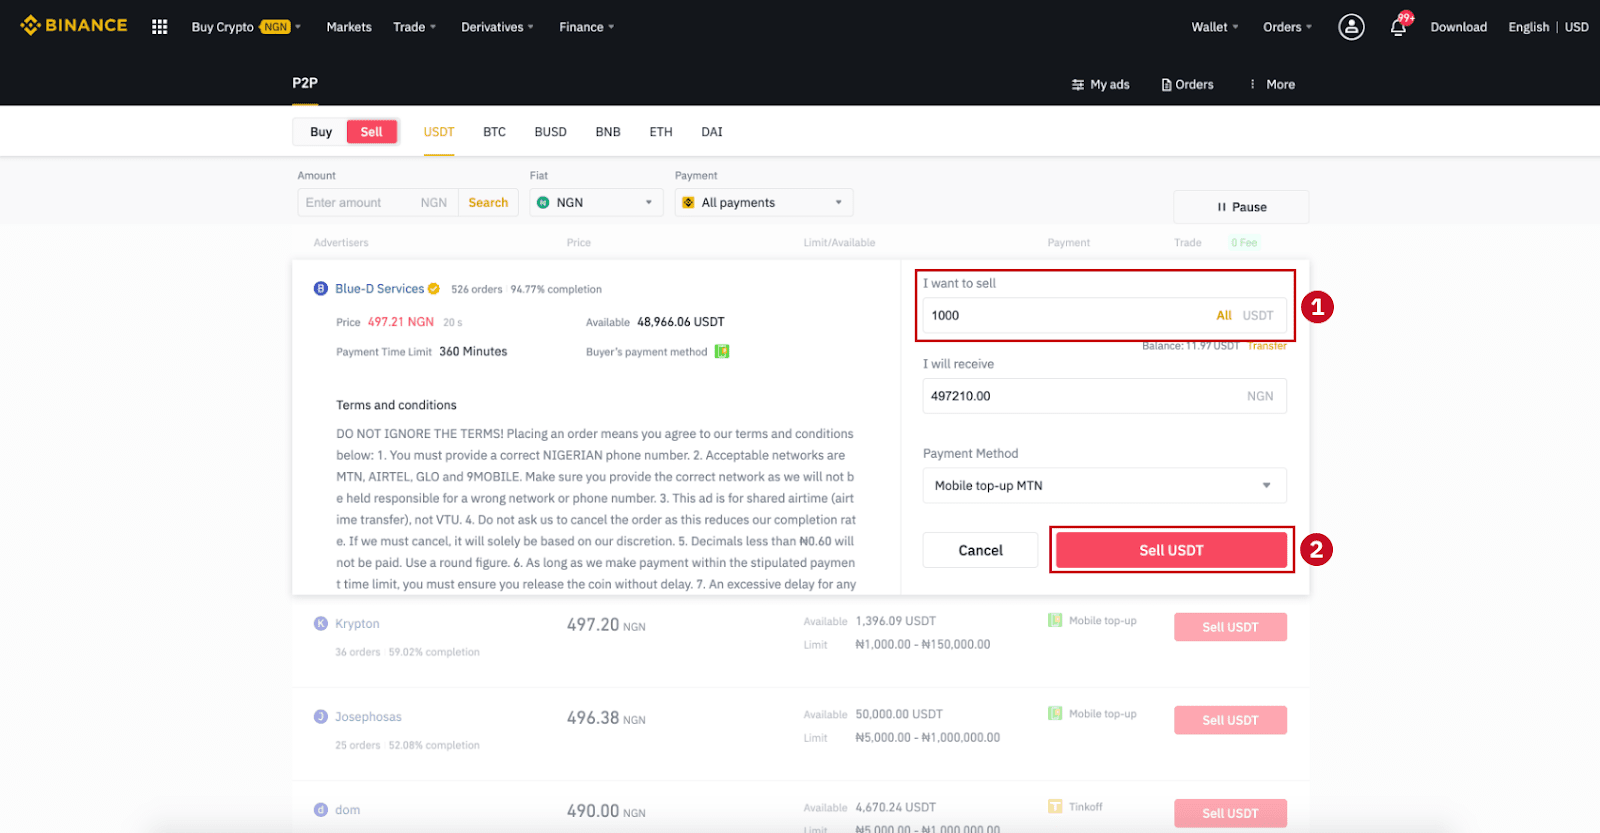 How to SELL Crypto on Binance P2P via Web and Mobile App